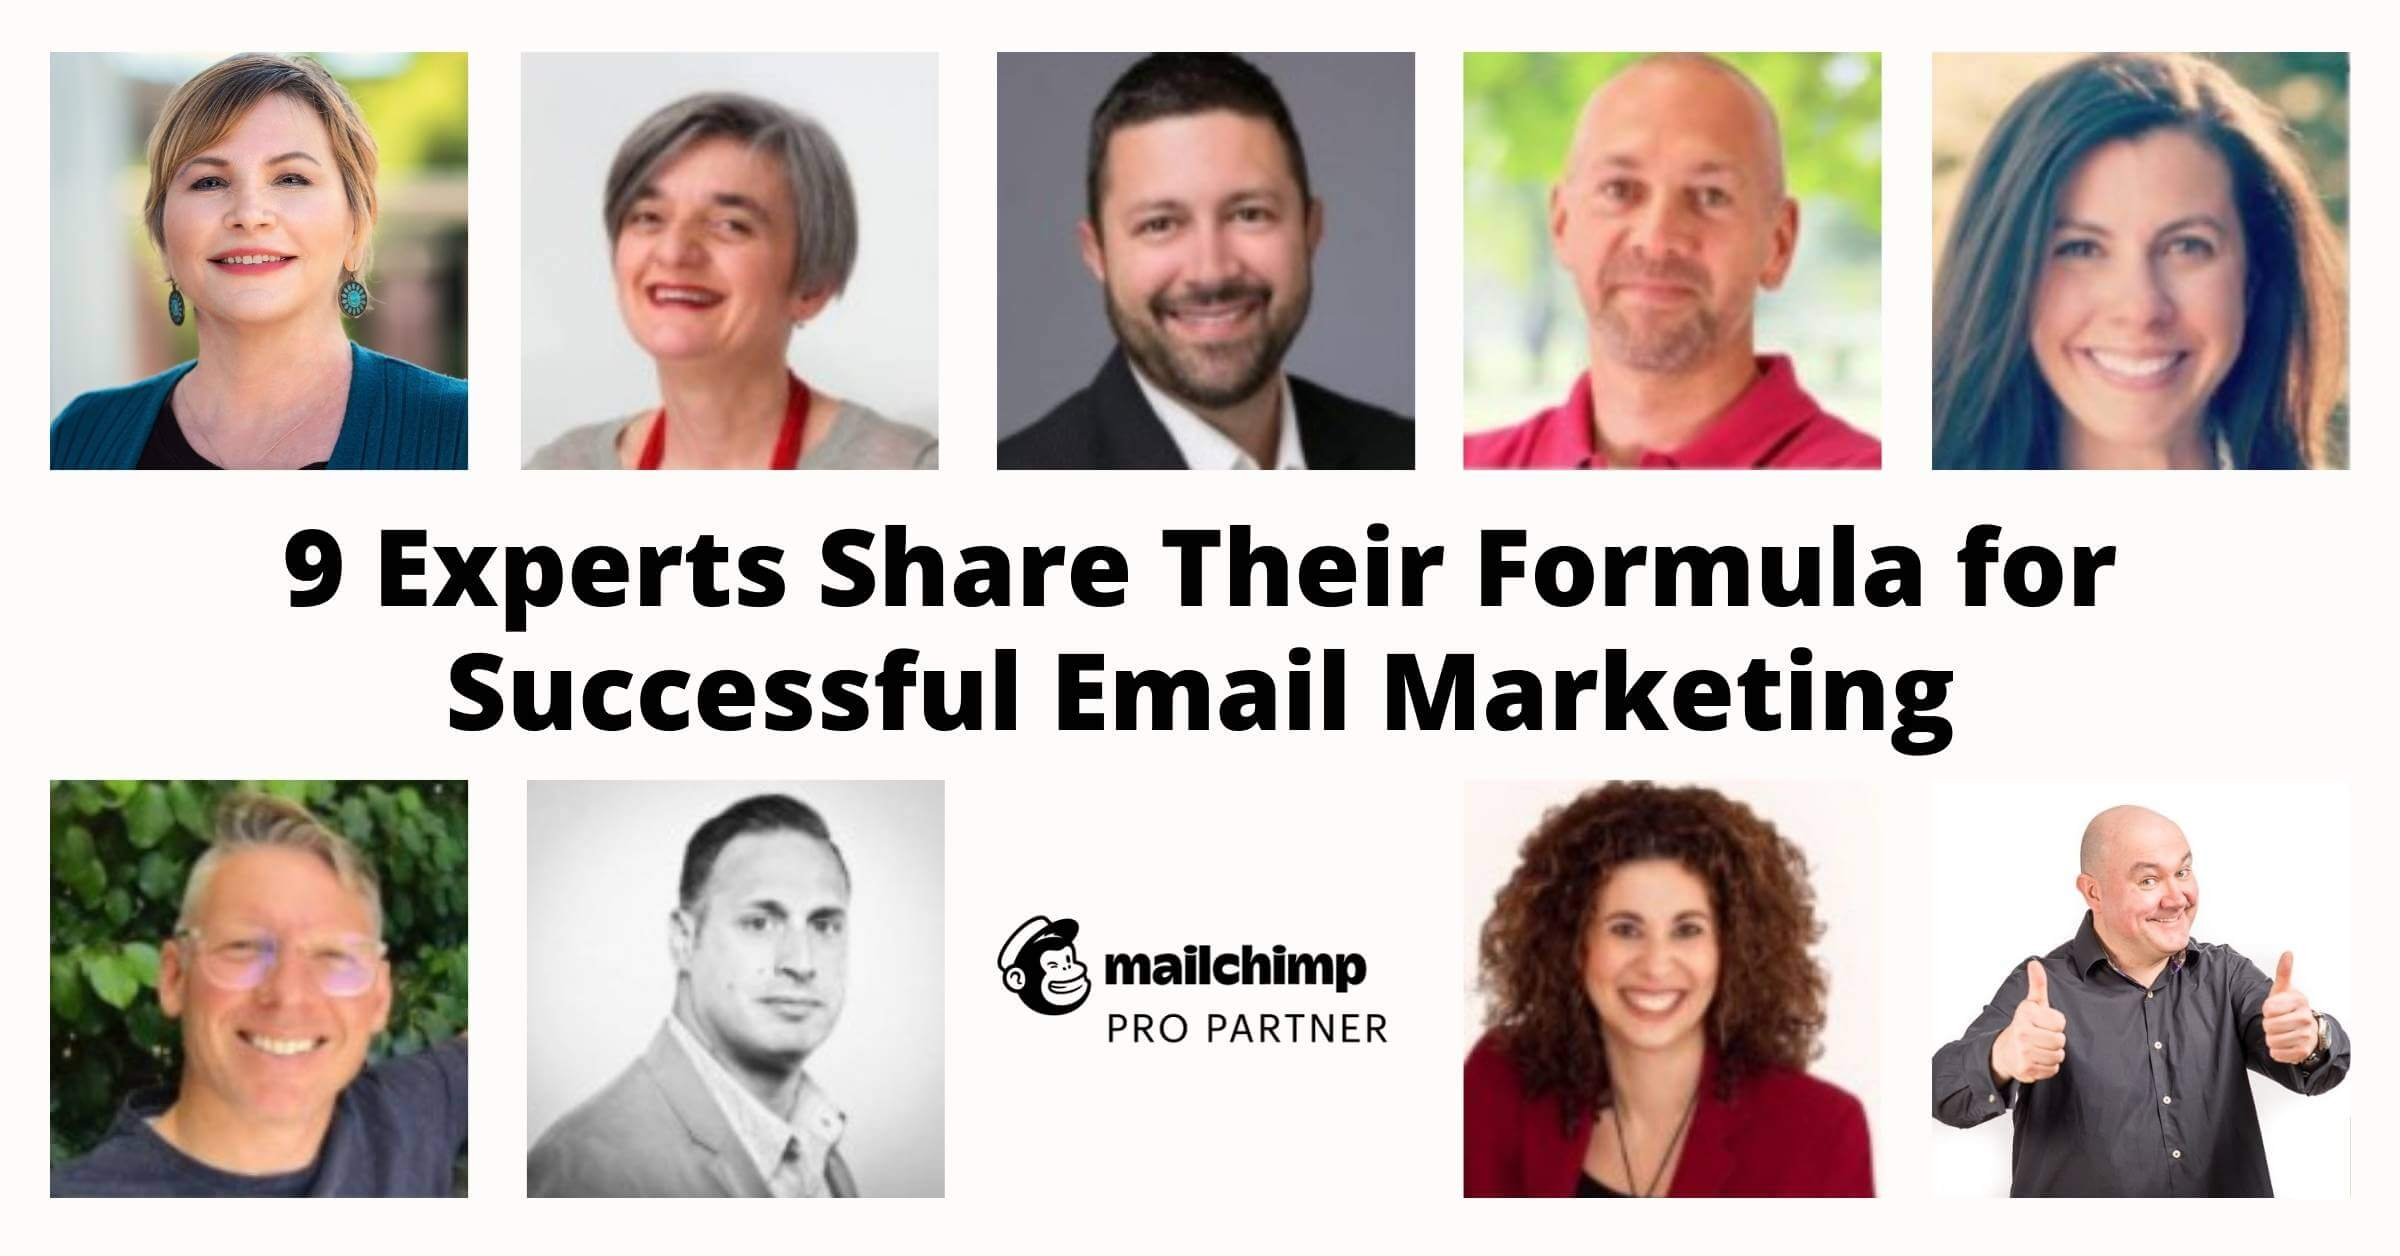 9 Experts Share Their Formula to Successful Email Marketing (1)